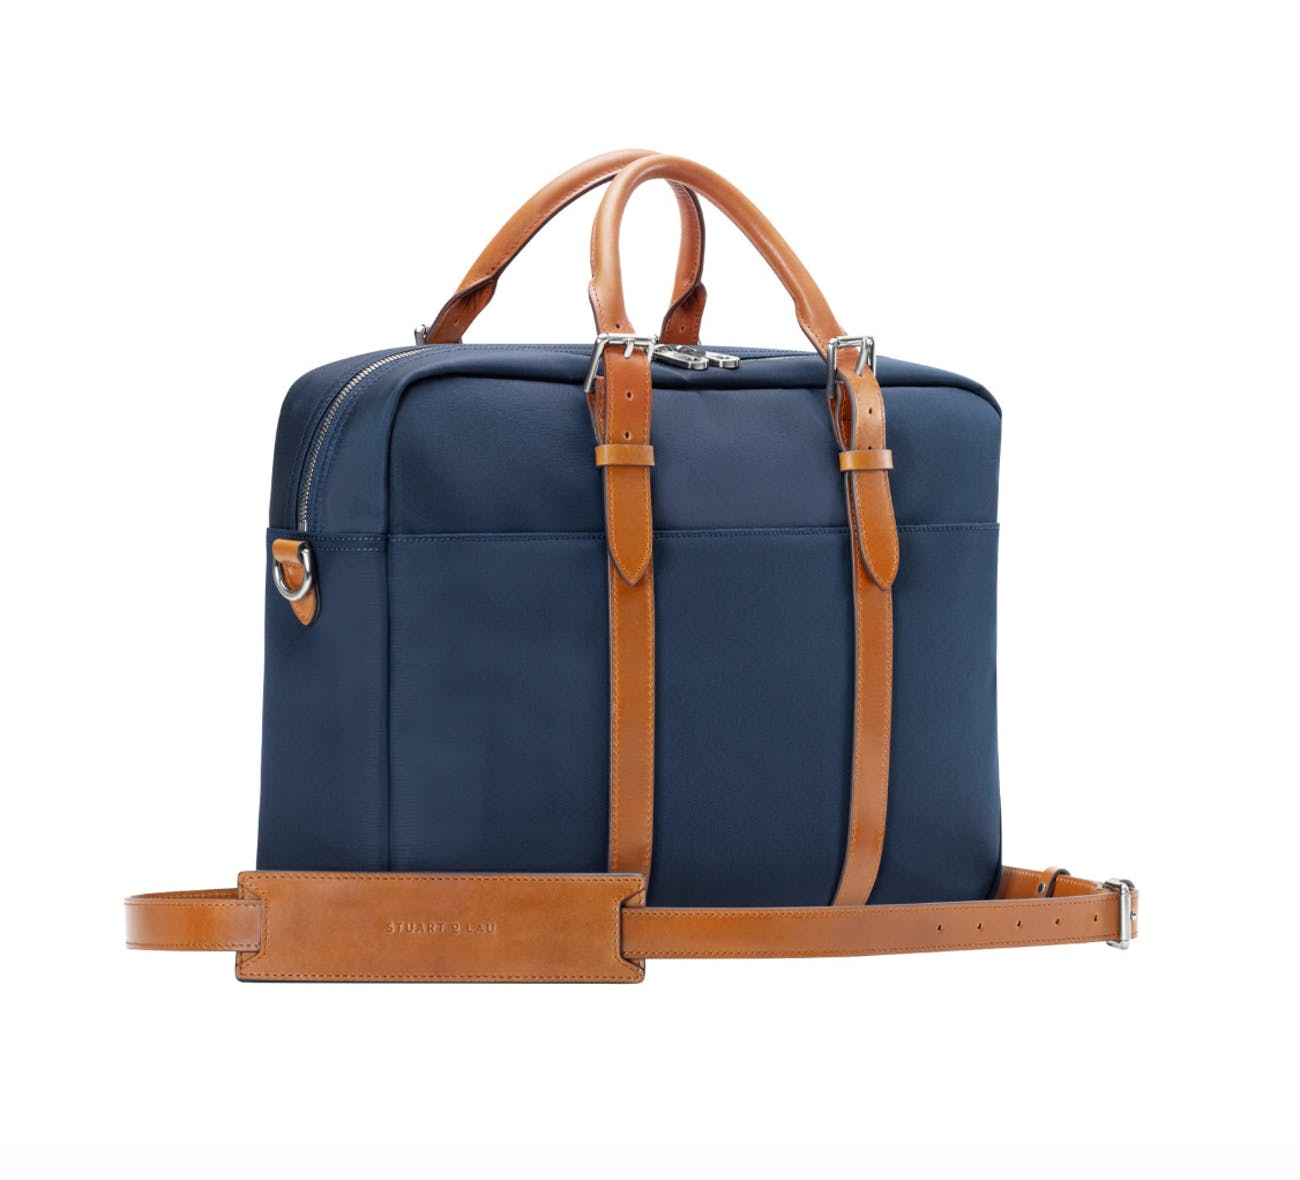 We Love This Functional Briefcase and So Should You